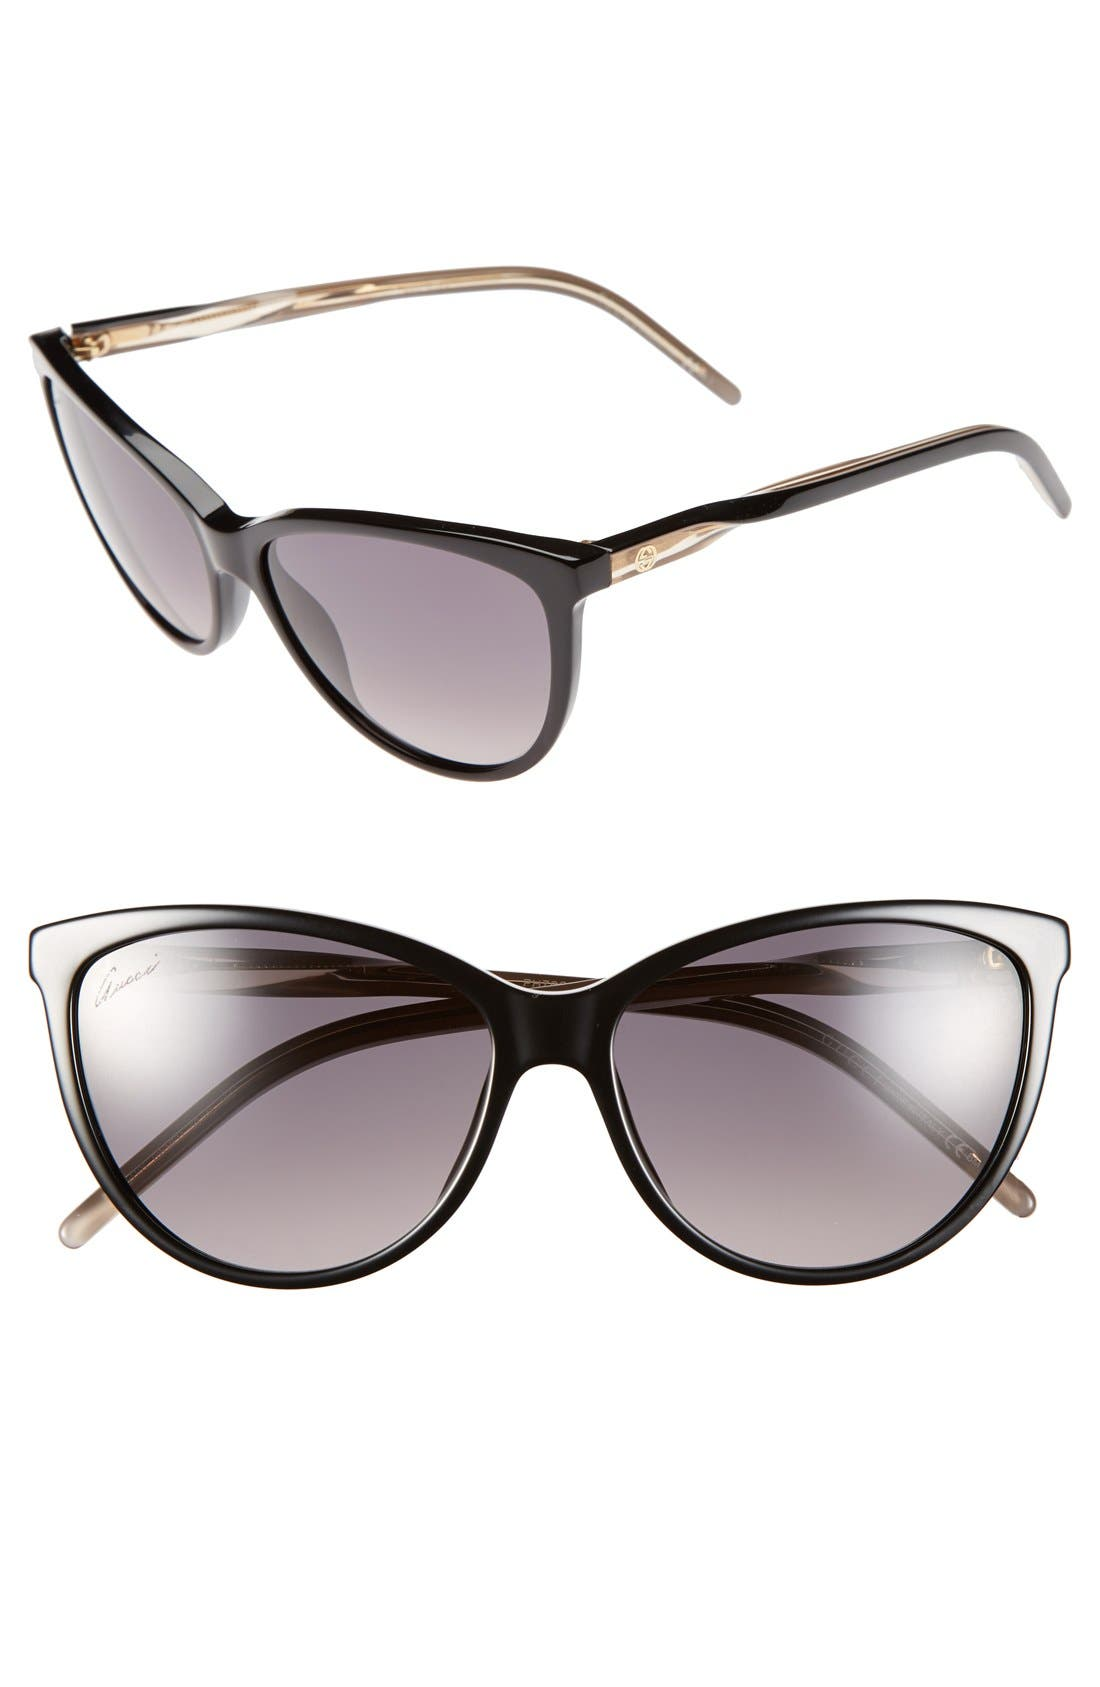 Alternate Image 1 Selected - Gucci 58mm Cat Eye Sunglasses